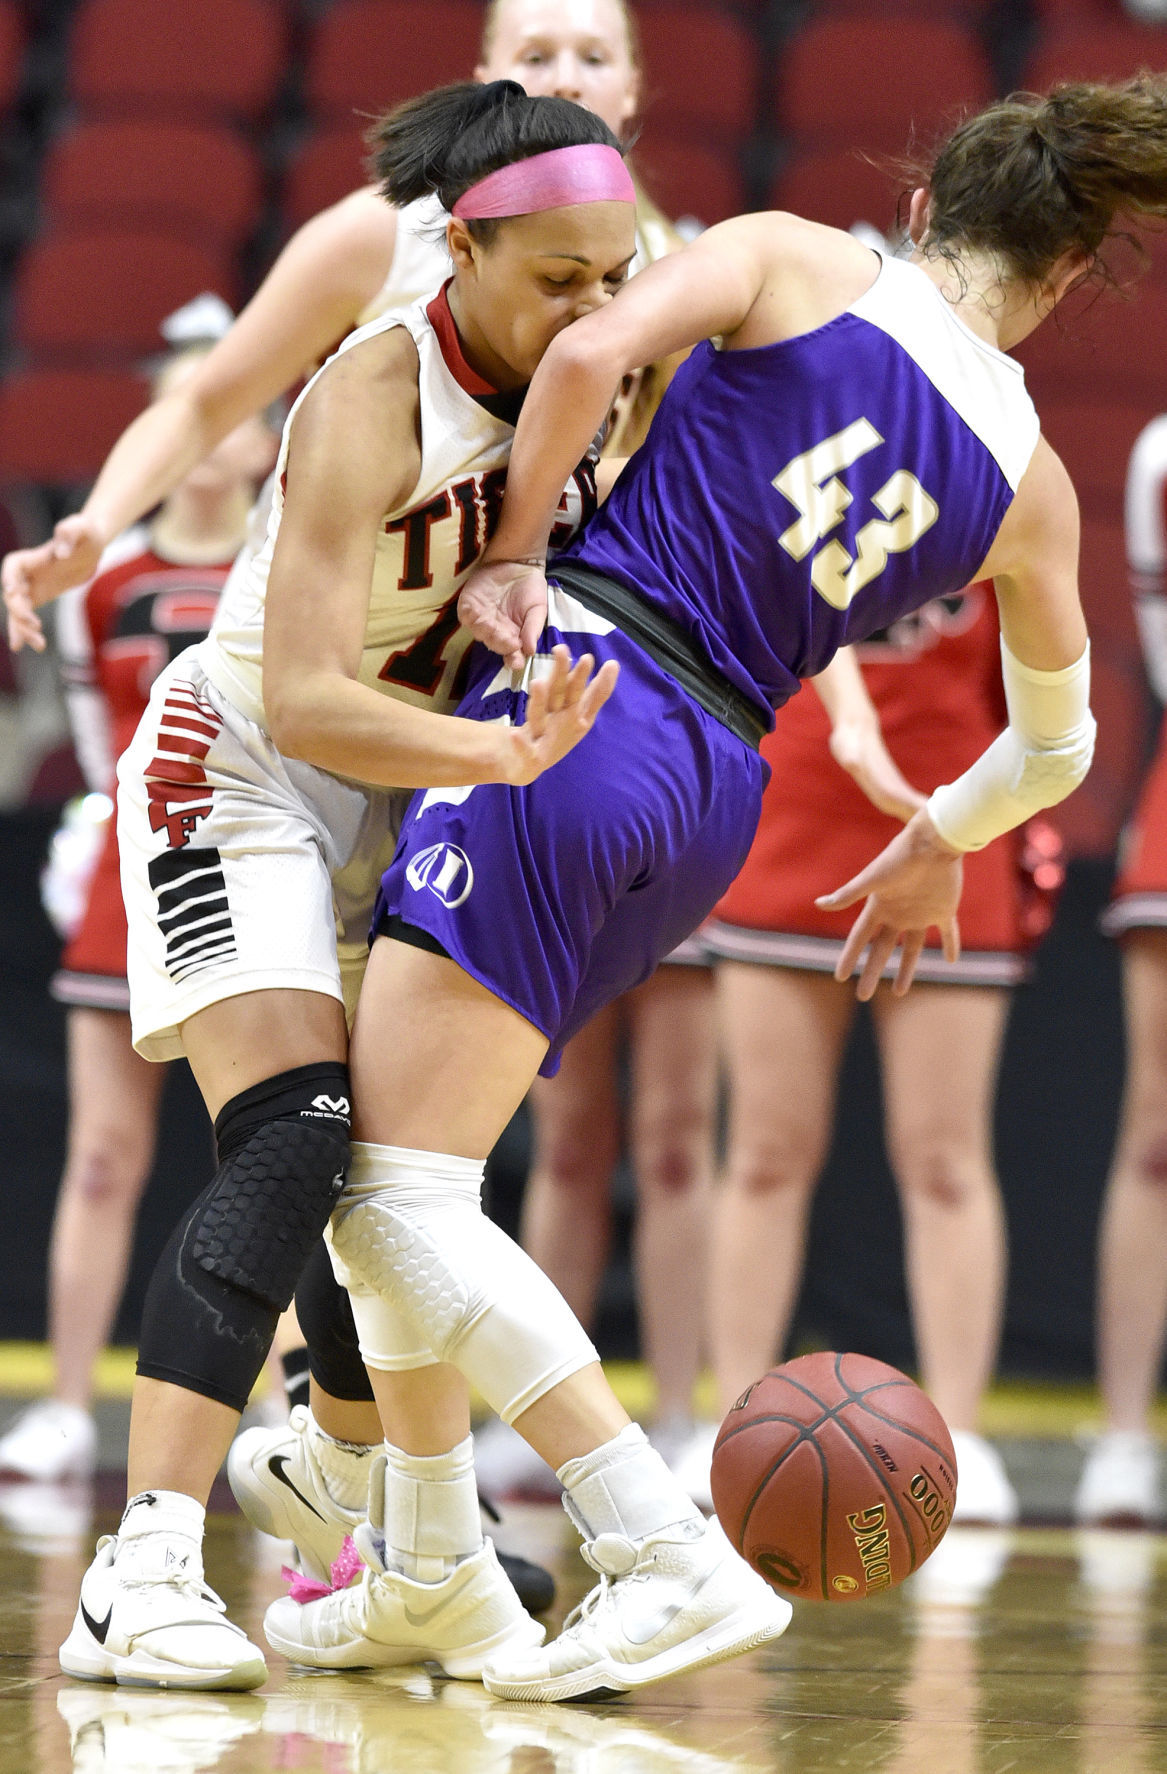 022618TH-Cedar-Falls-Indianola-4